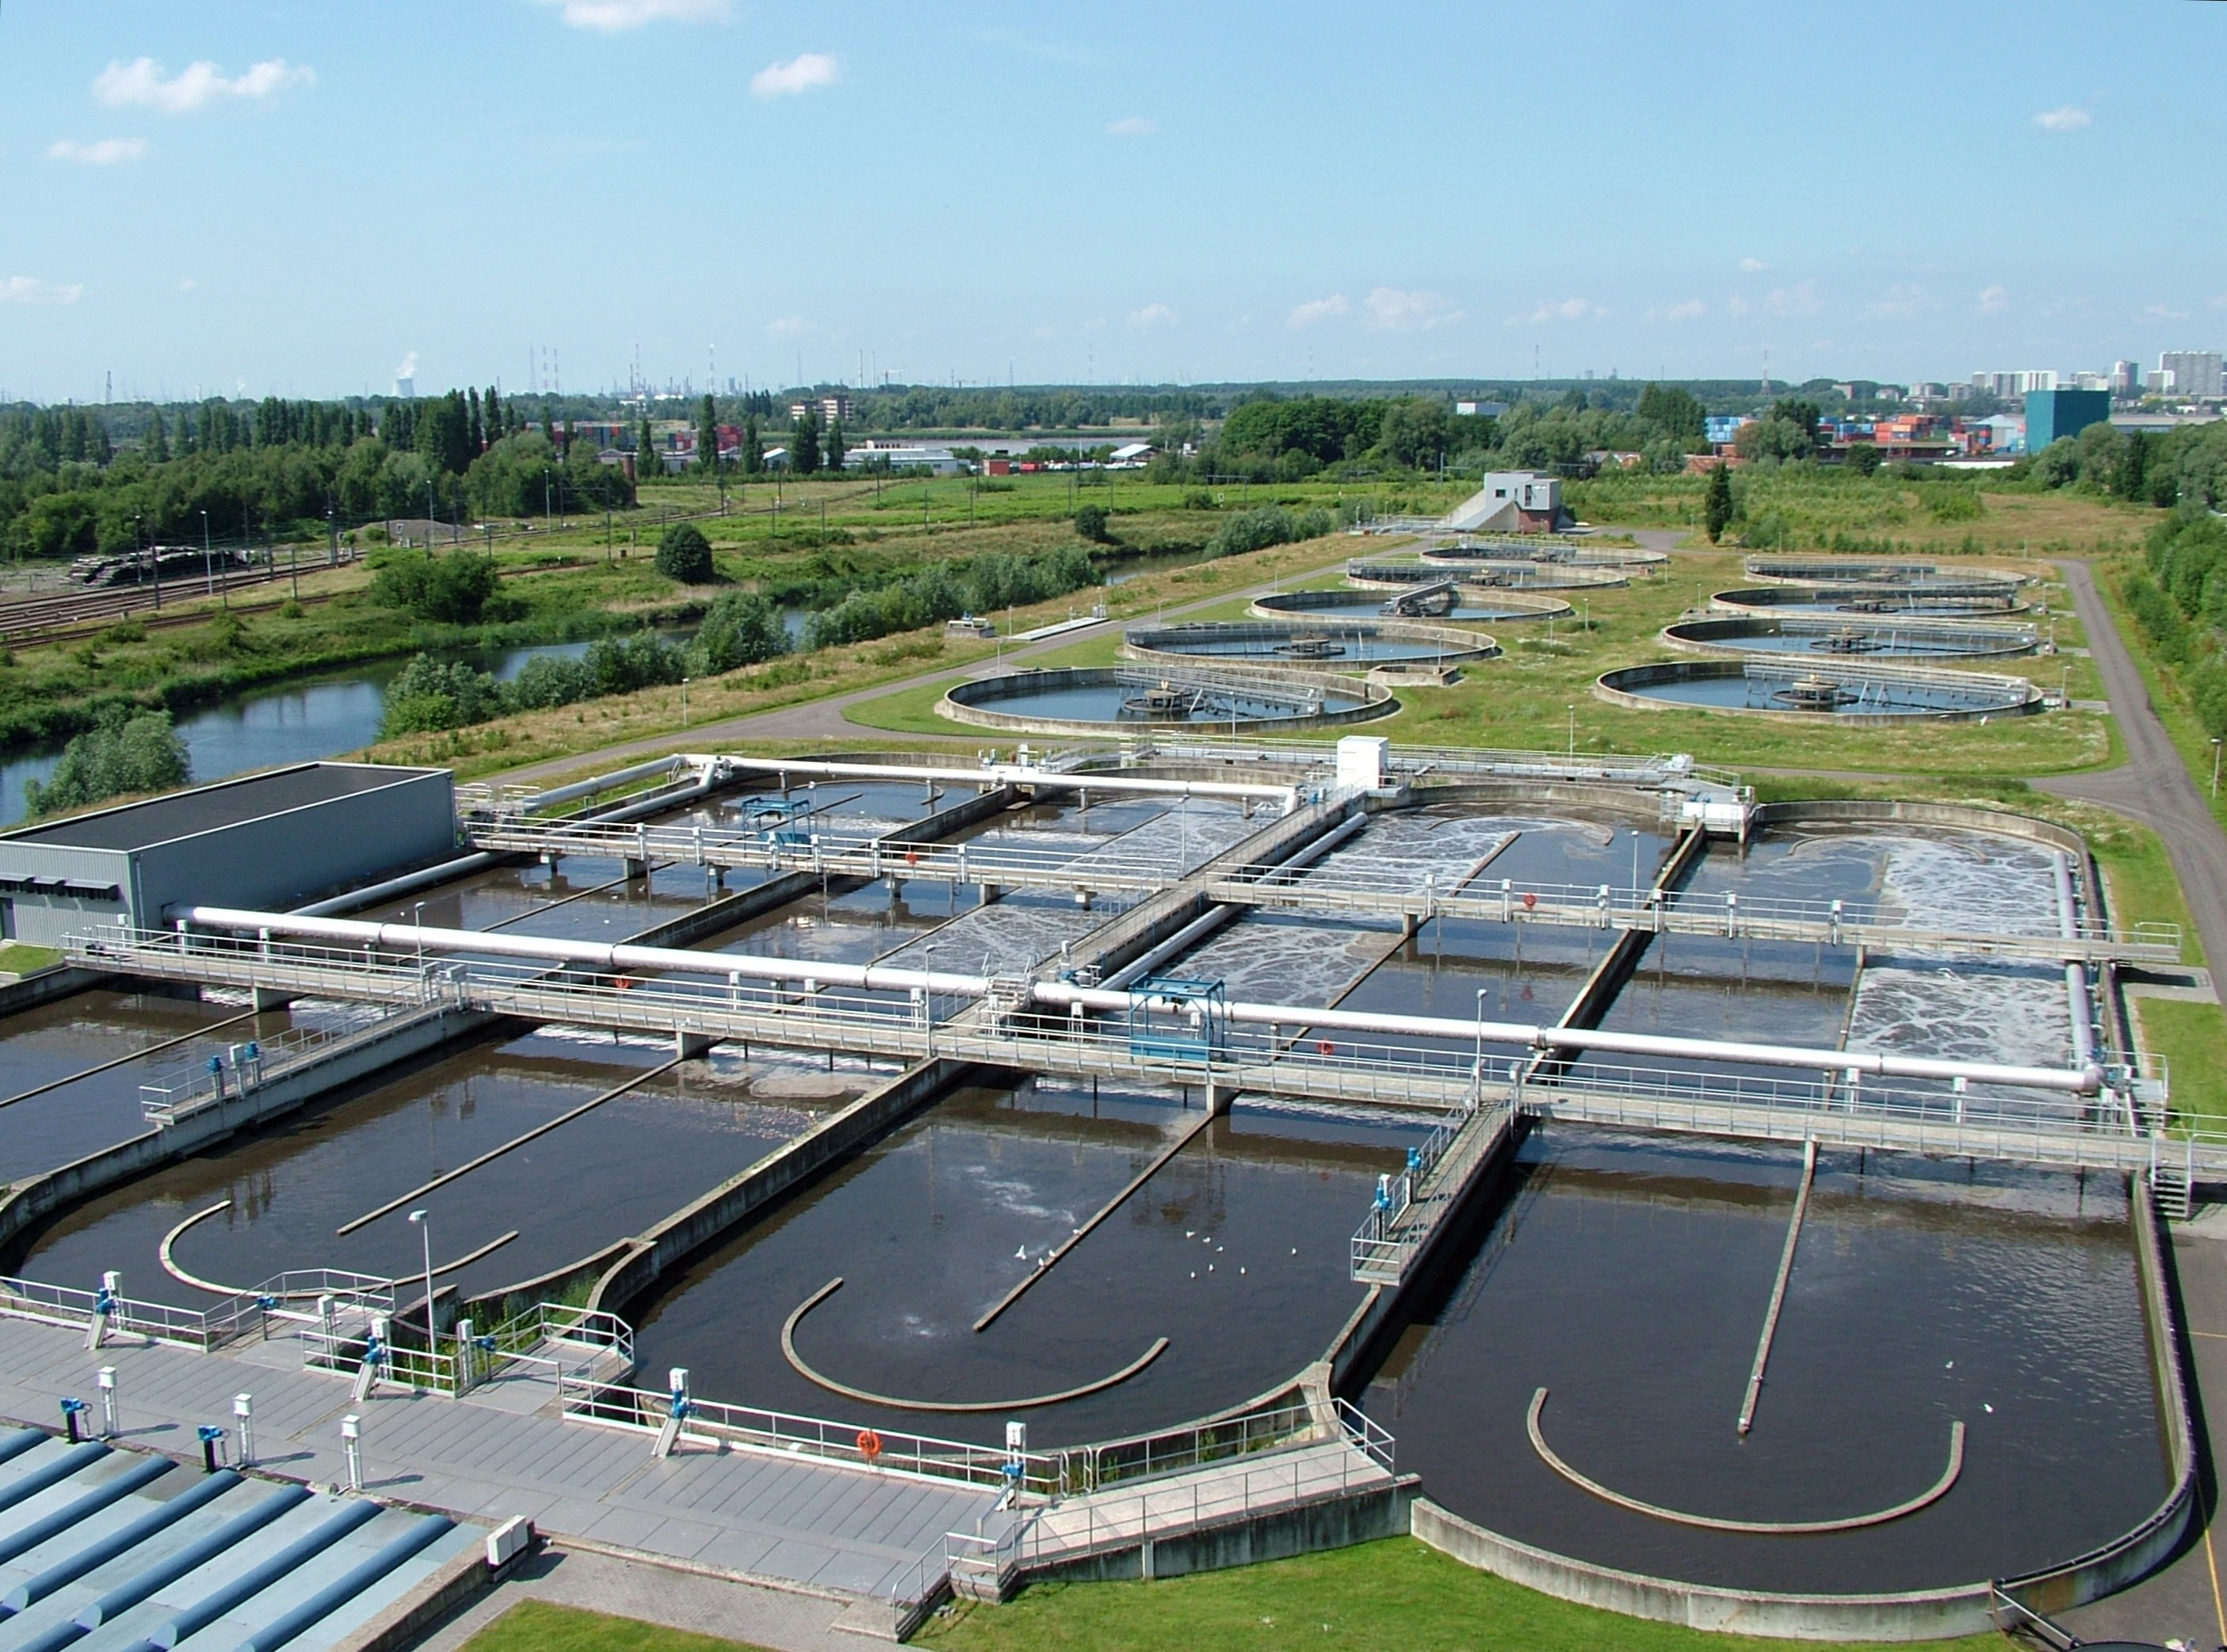 wastewater treatment plant (Wikipedia)